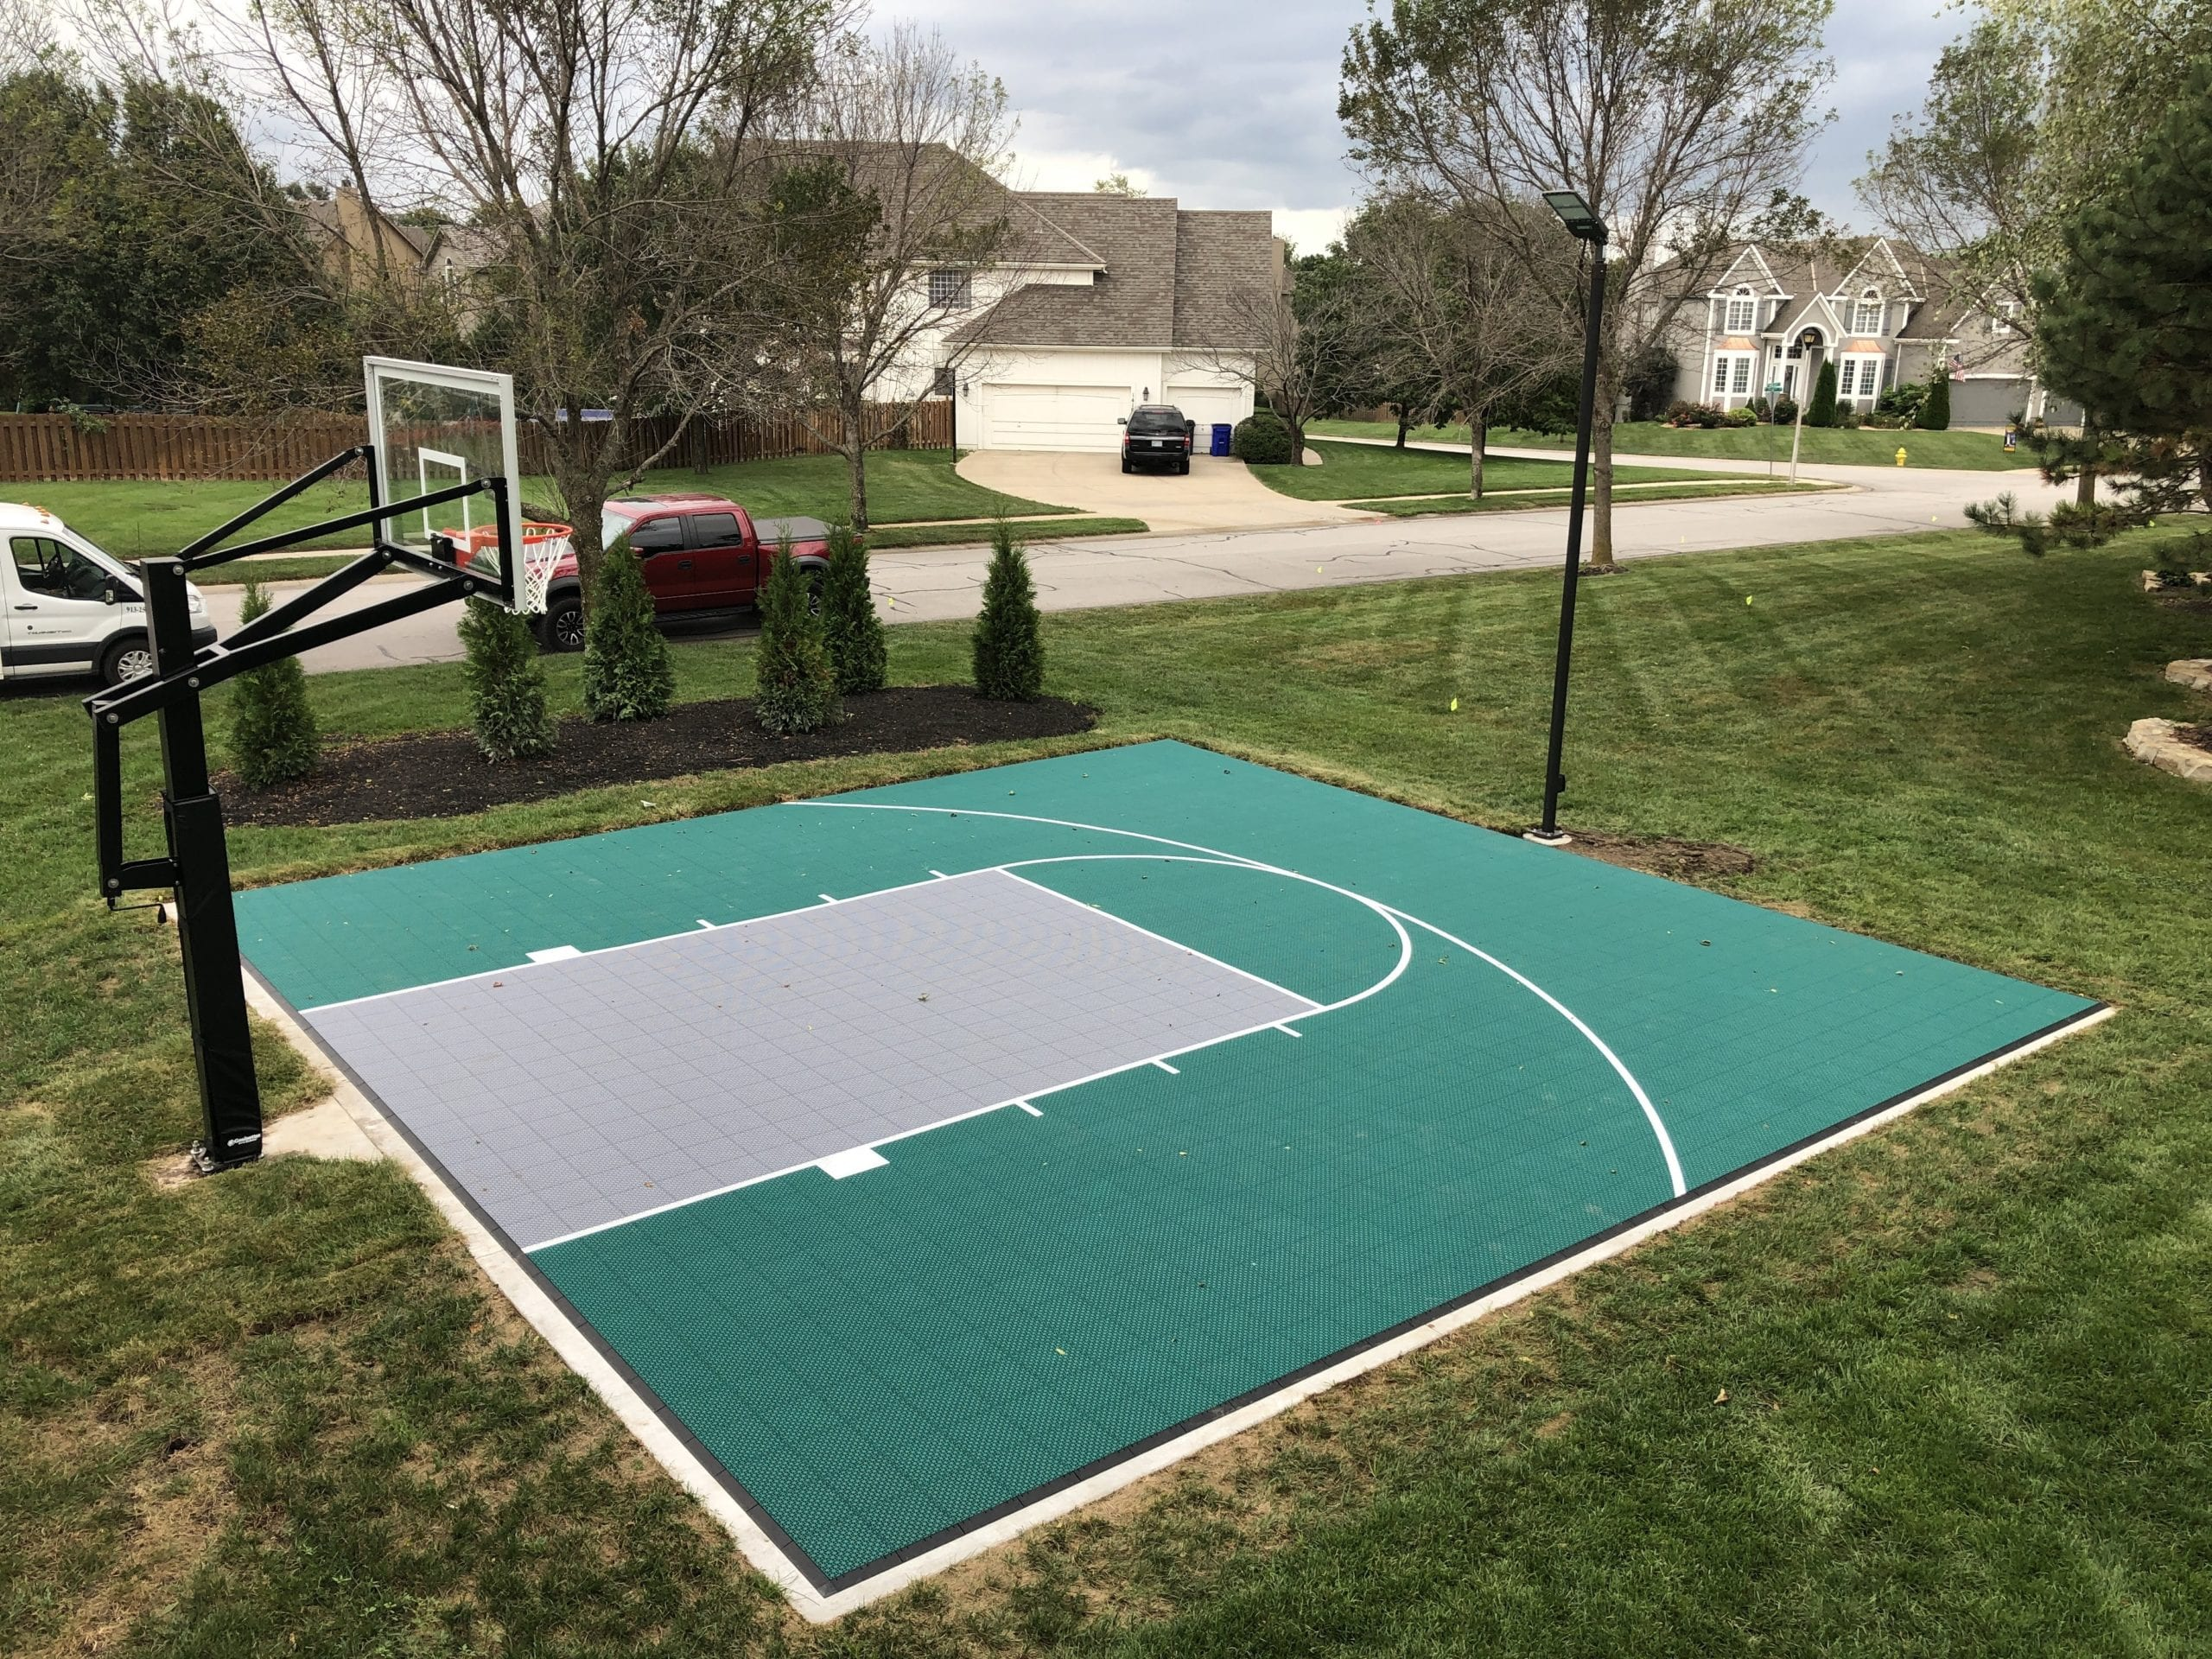 Outdoor Basketball Athletic Court